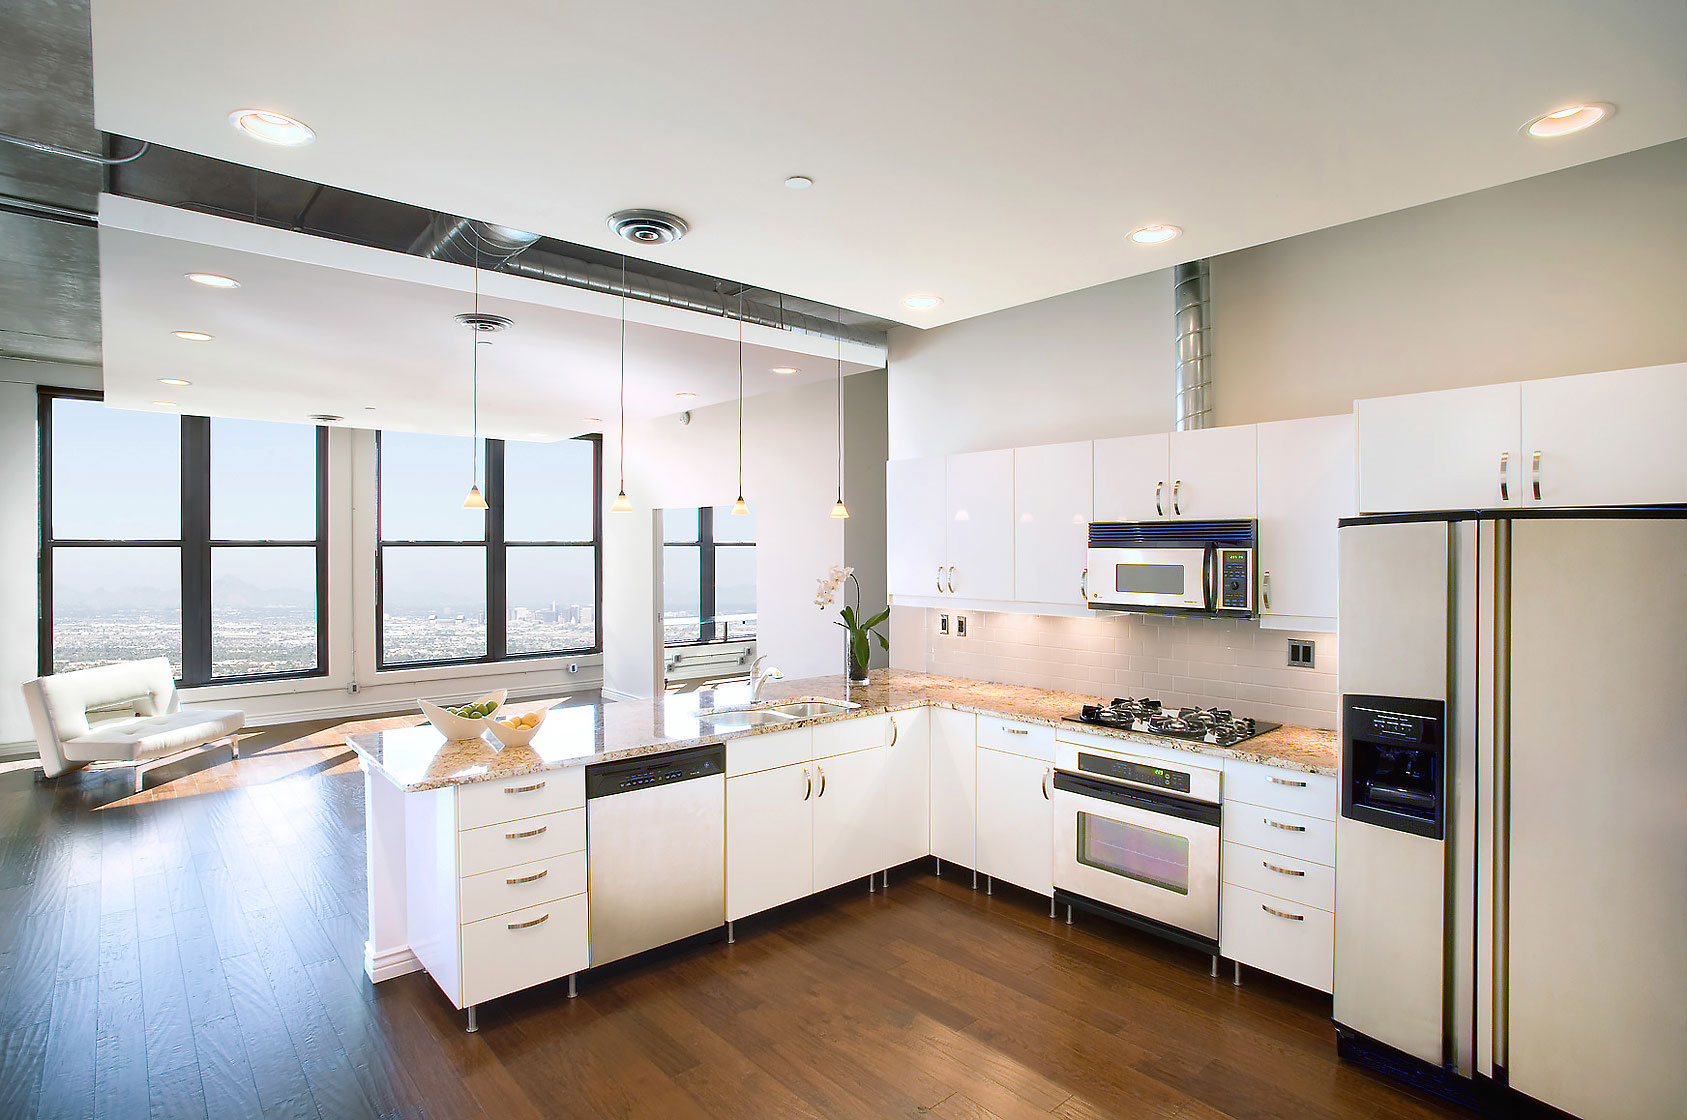 Editorial photography of architectural interior of contemporary kitchen in lofty condo by Phoenix commercial photographer Jason Koster